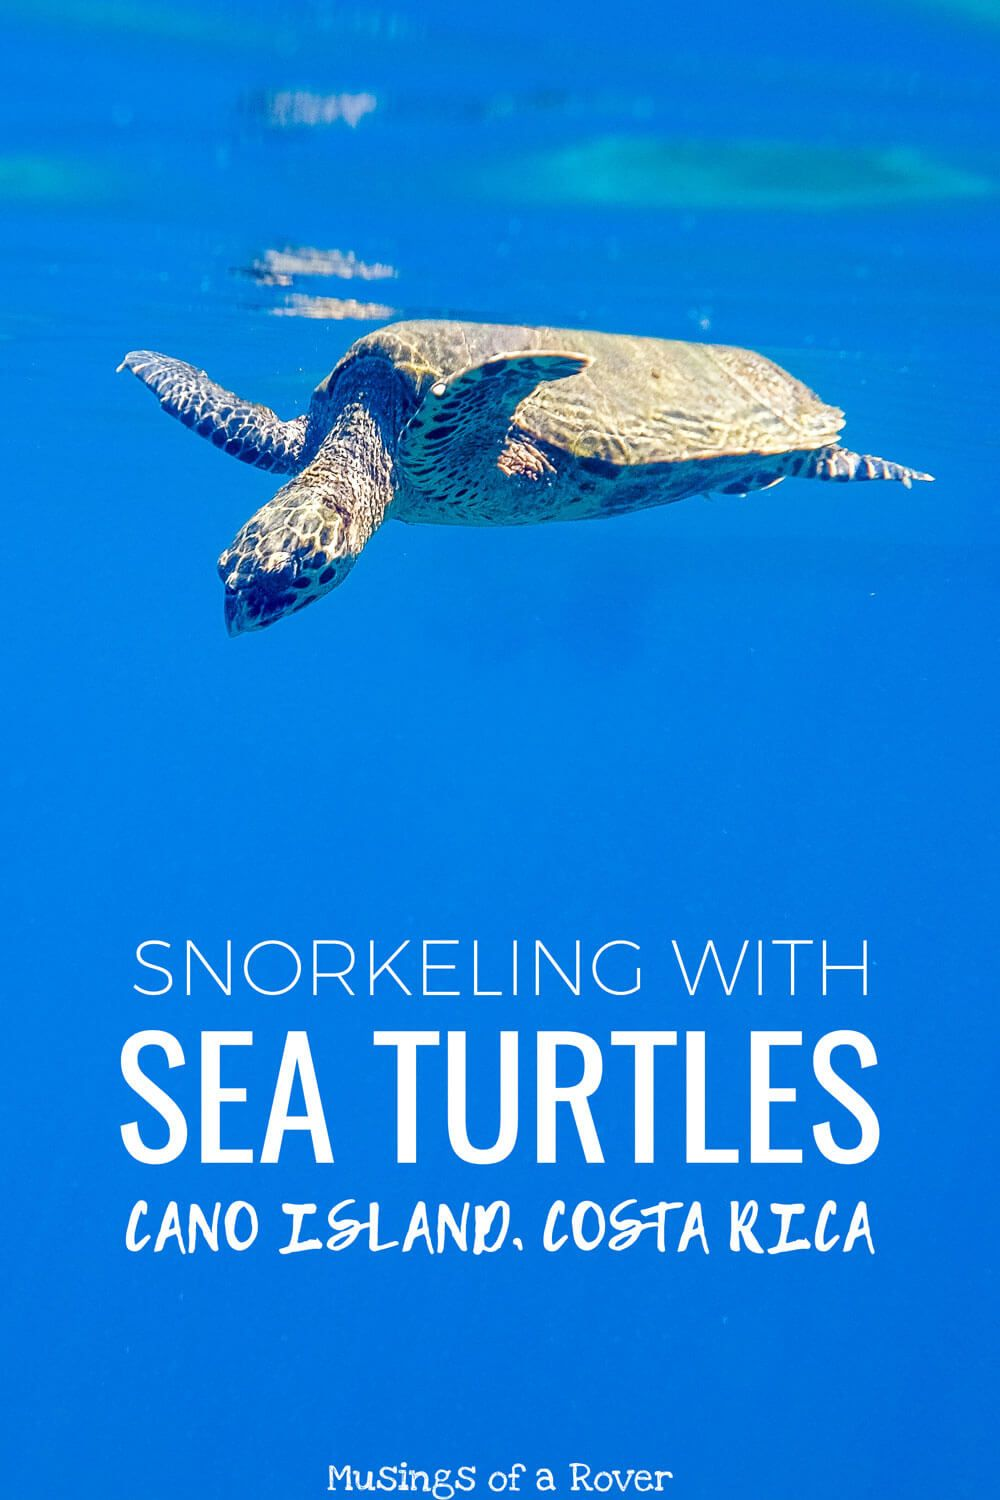 Visiting Costa Rica and want to see sea turtles? Cano Island is one of the best snorkeling spots in all of Costa Rica. You'll see sea turtles, stingrays, puffer fish, and more. Find out what this trip is like!